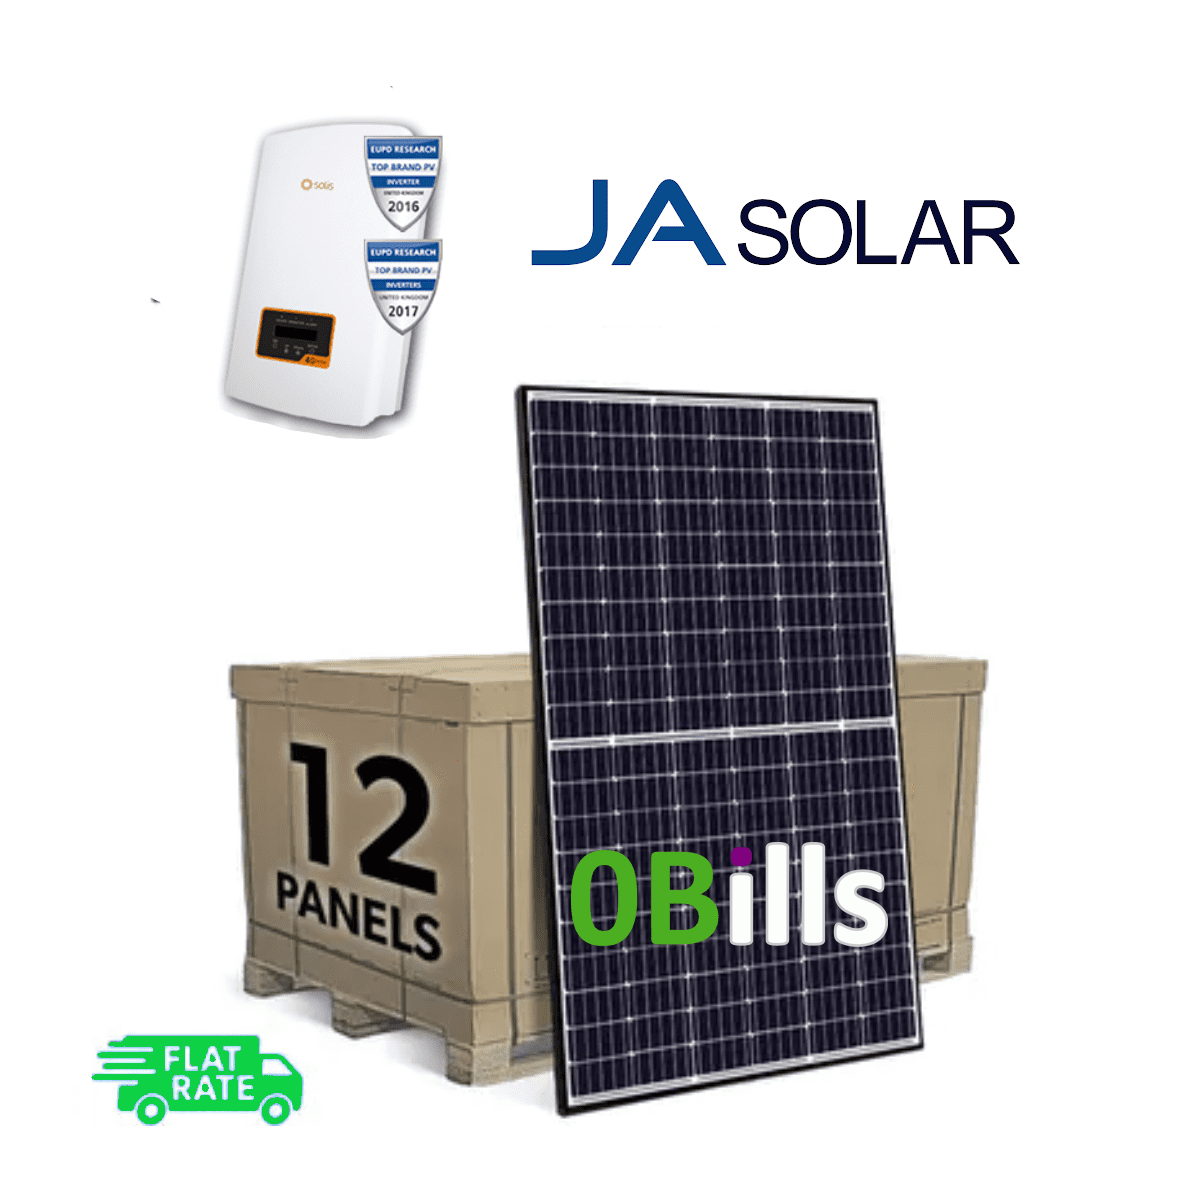 Amazon Solis 4kW Grid Tie DIY Solar Panel System Kit